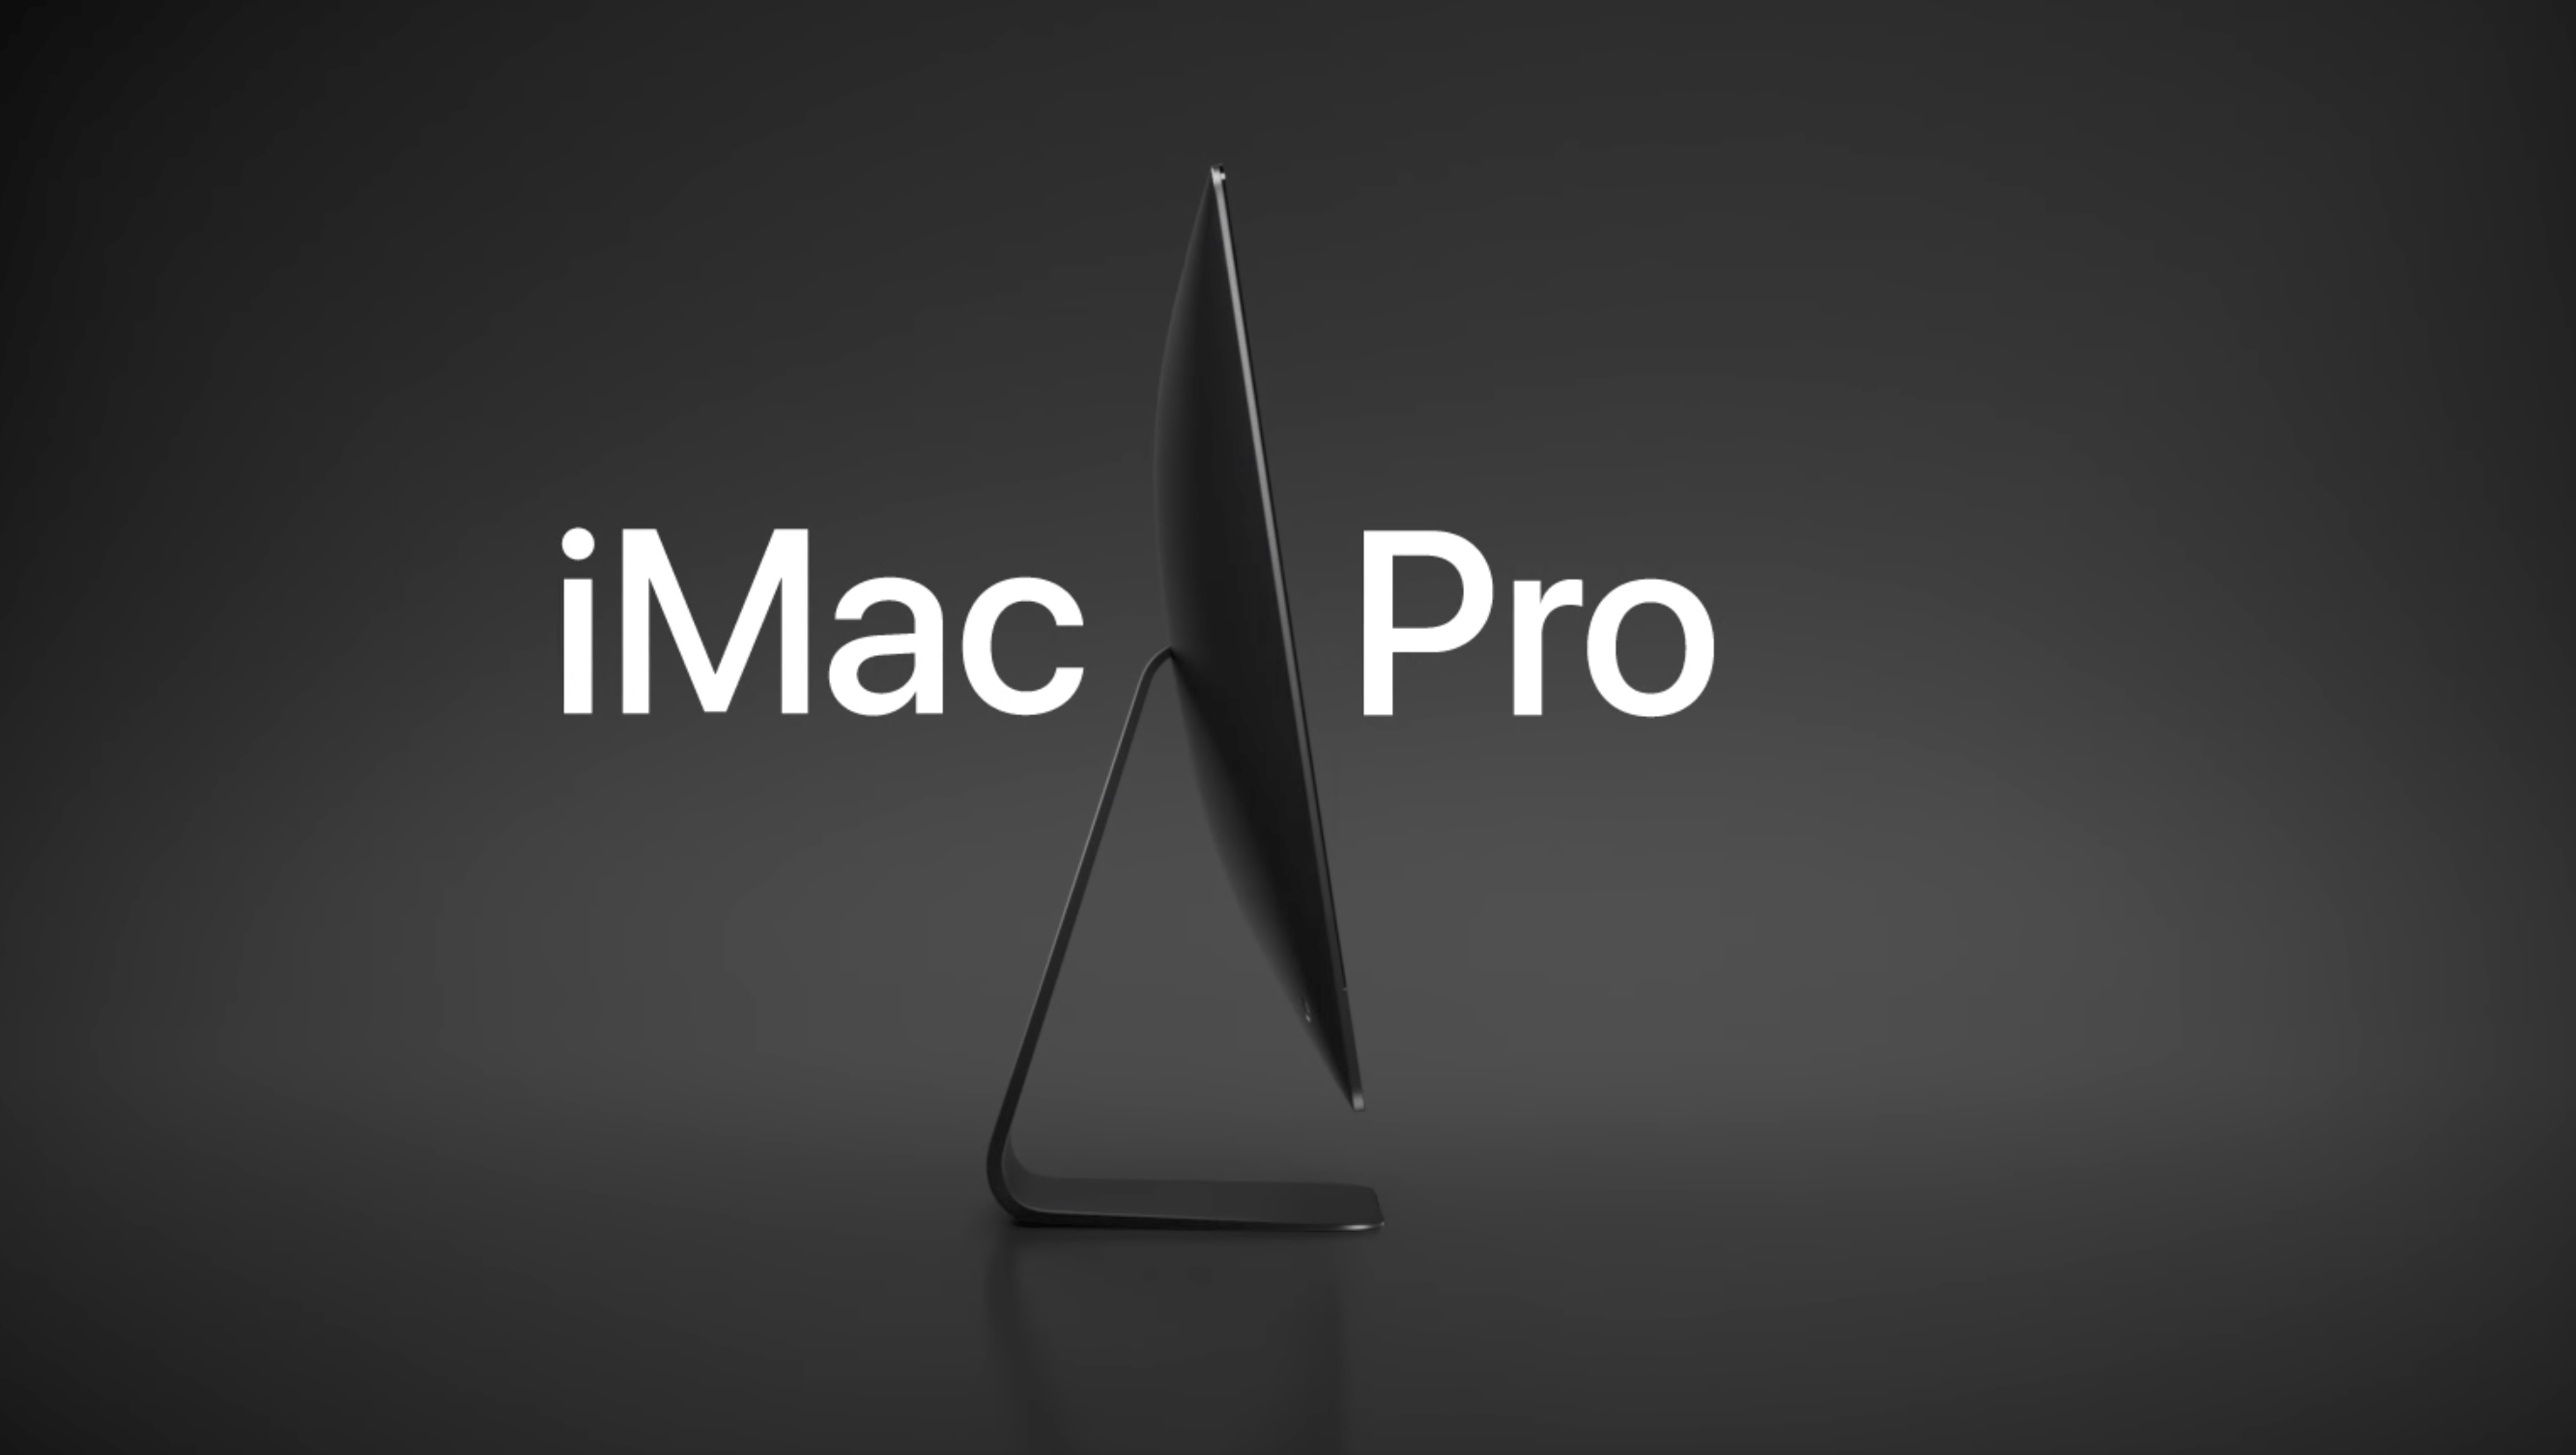 The new iMac Pro brings awesome firepower to the desktop this December.